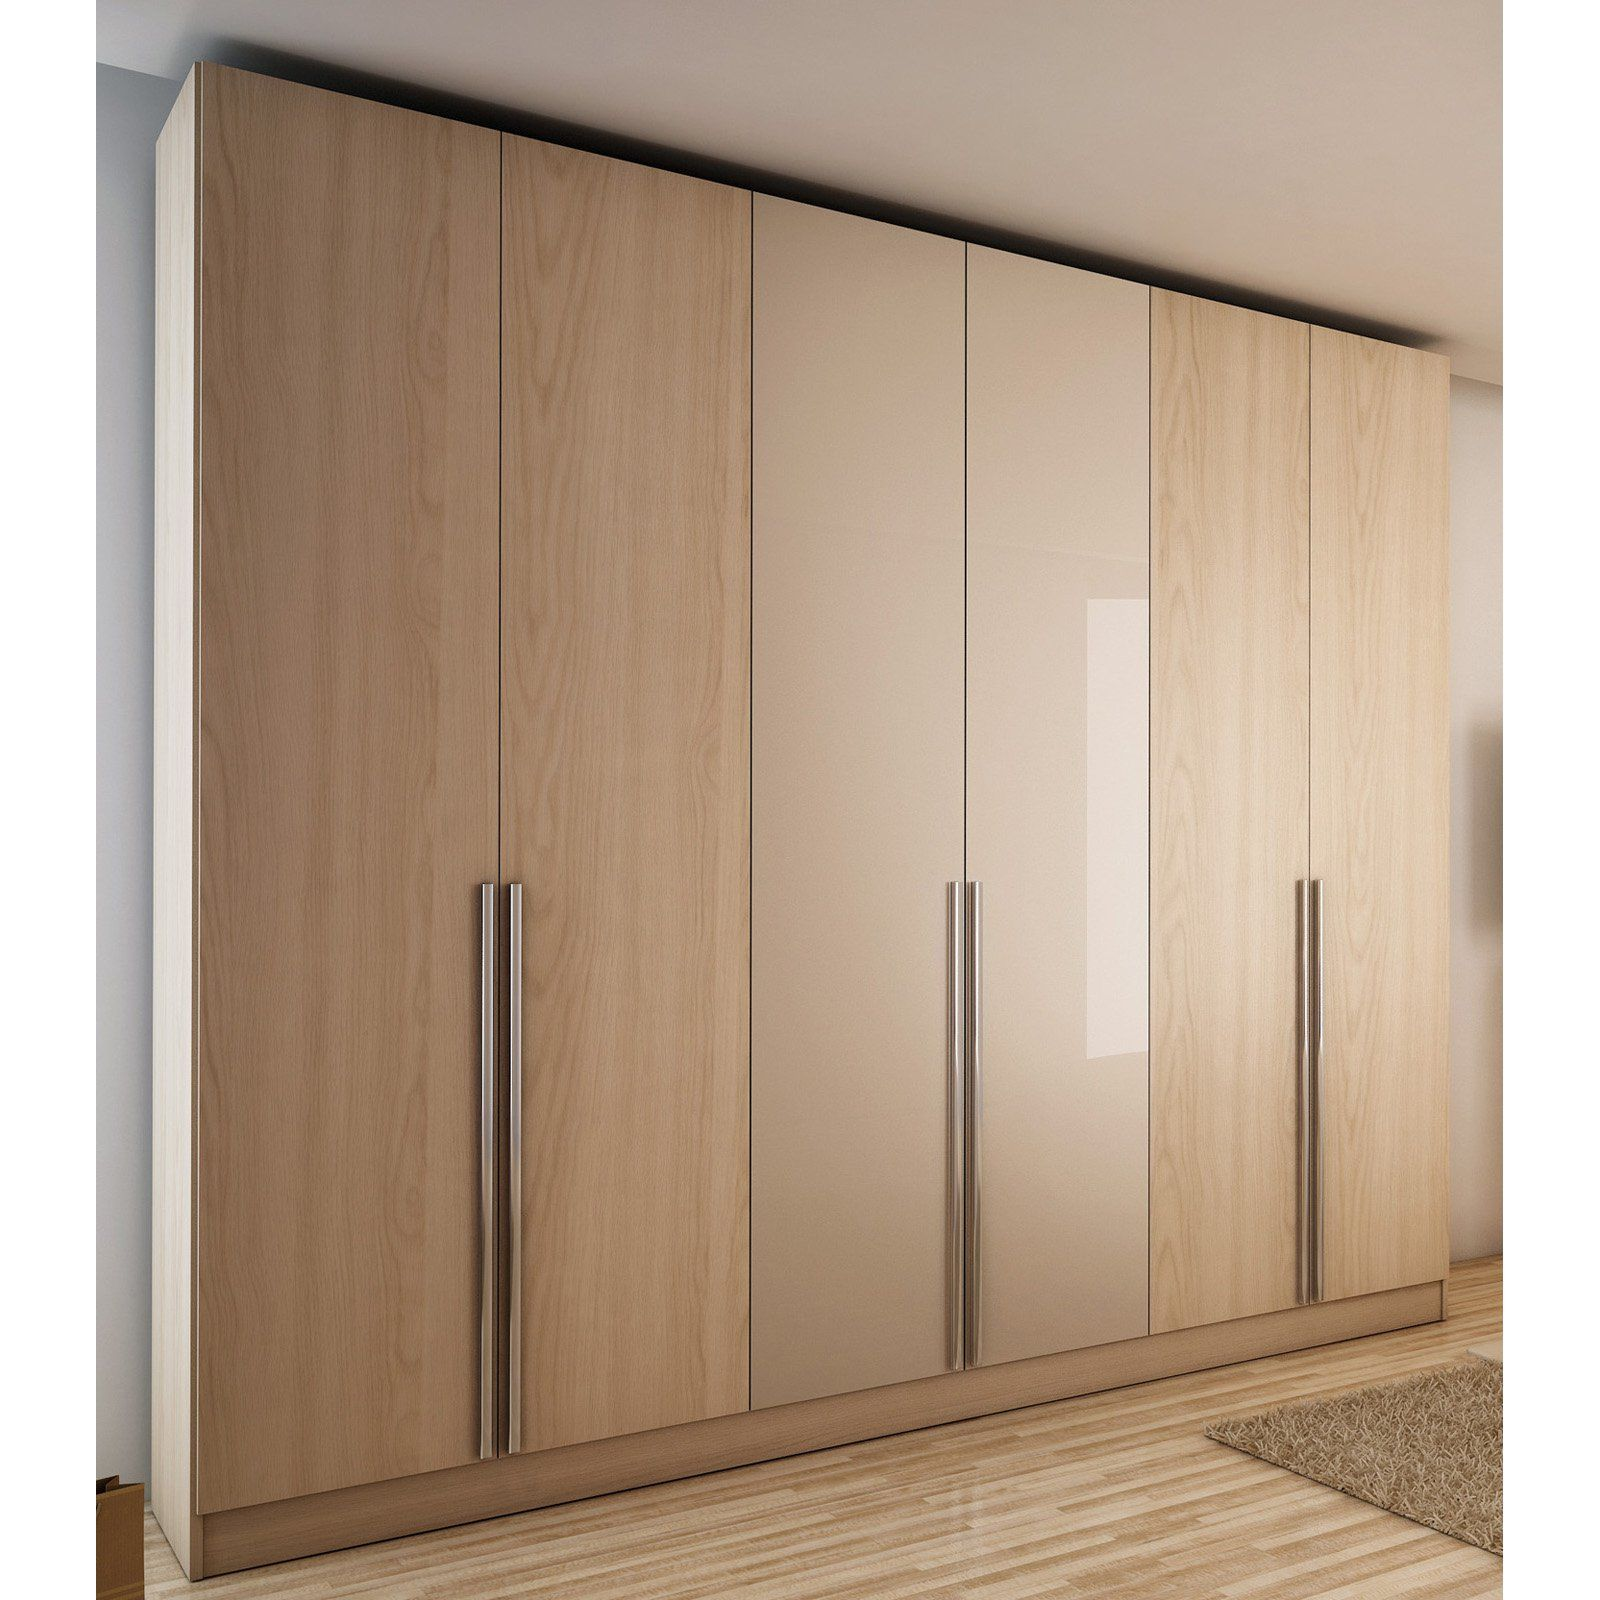 organizer custom wardrobes eldridge comfort design mirror portable moment sauder to homeplus cabinet rubbermaid heavy multipurpose home high chelsea depot doors furniture create walmart white manhattan duty gloss wow armoire bedroom wardrobe closet closetmaid lowes inch comforter sliding fitted in